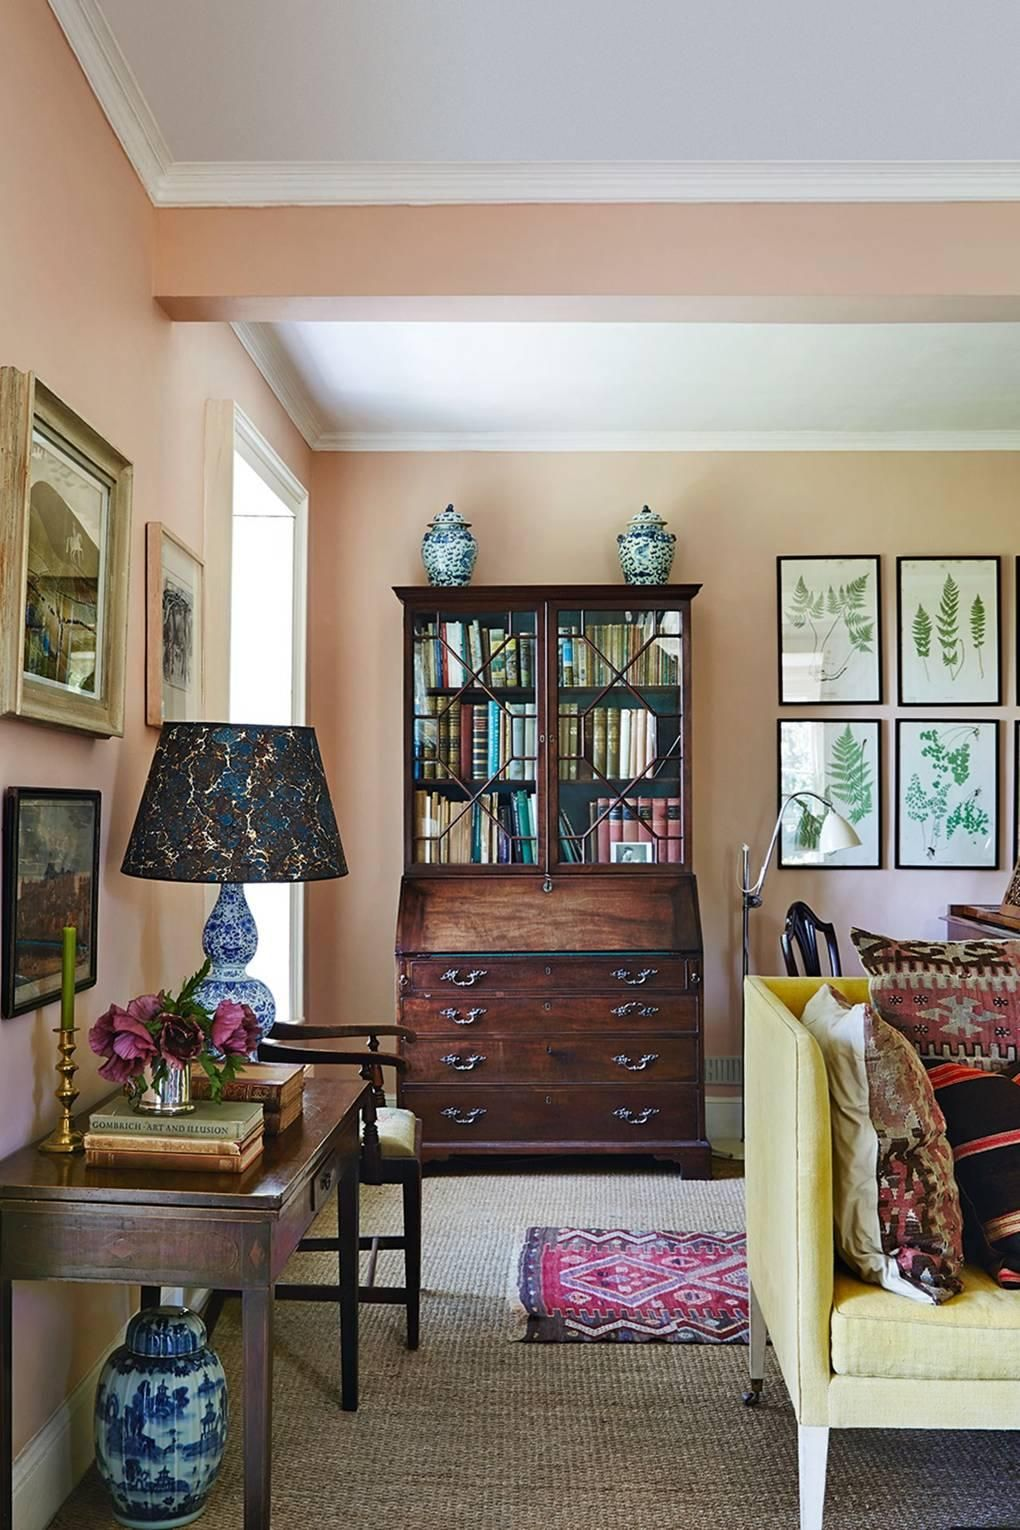 Pin By Catherine King On Decor Country House Decor Country Living Room Georgian Furniture